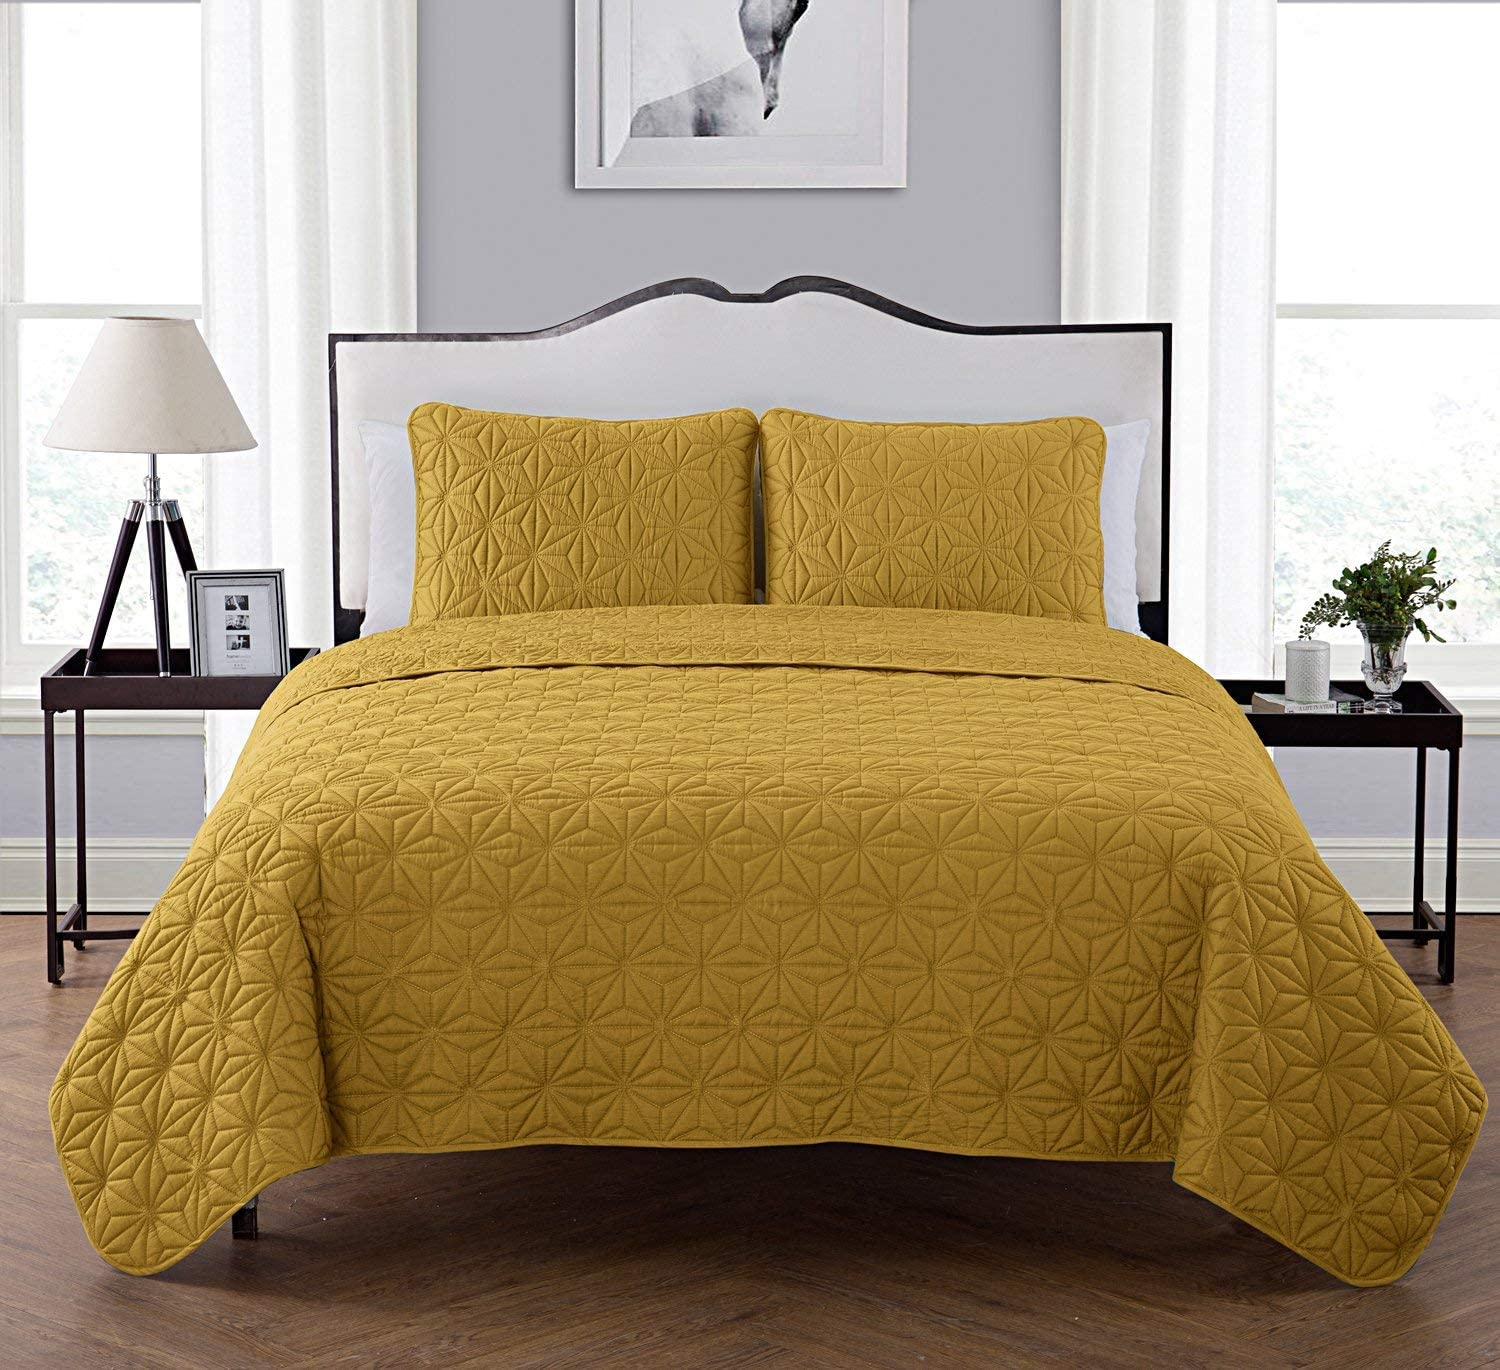 VCNY Home King Size Quilt Set in Gold Eye-Popping Geometric Pattern Beautiful Blanket 3 Pc Set w/ 2 Shams